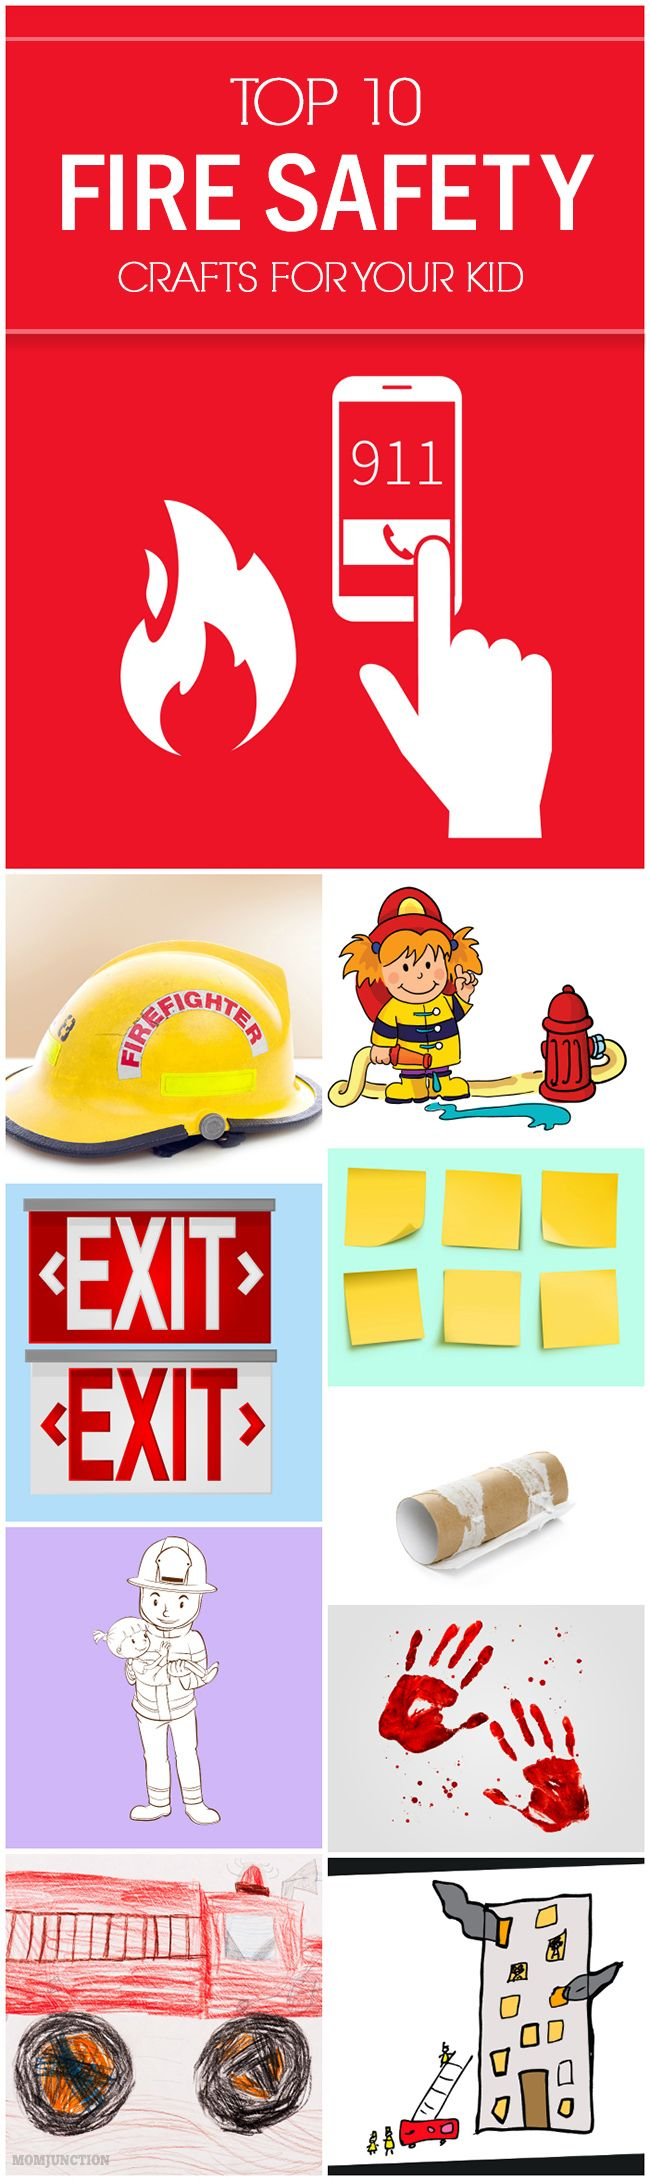 Top 10 Fire Safety Crafts For Preschoolers And Kids For